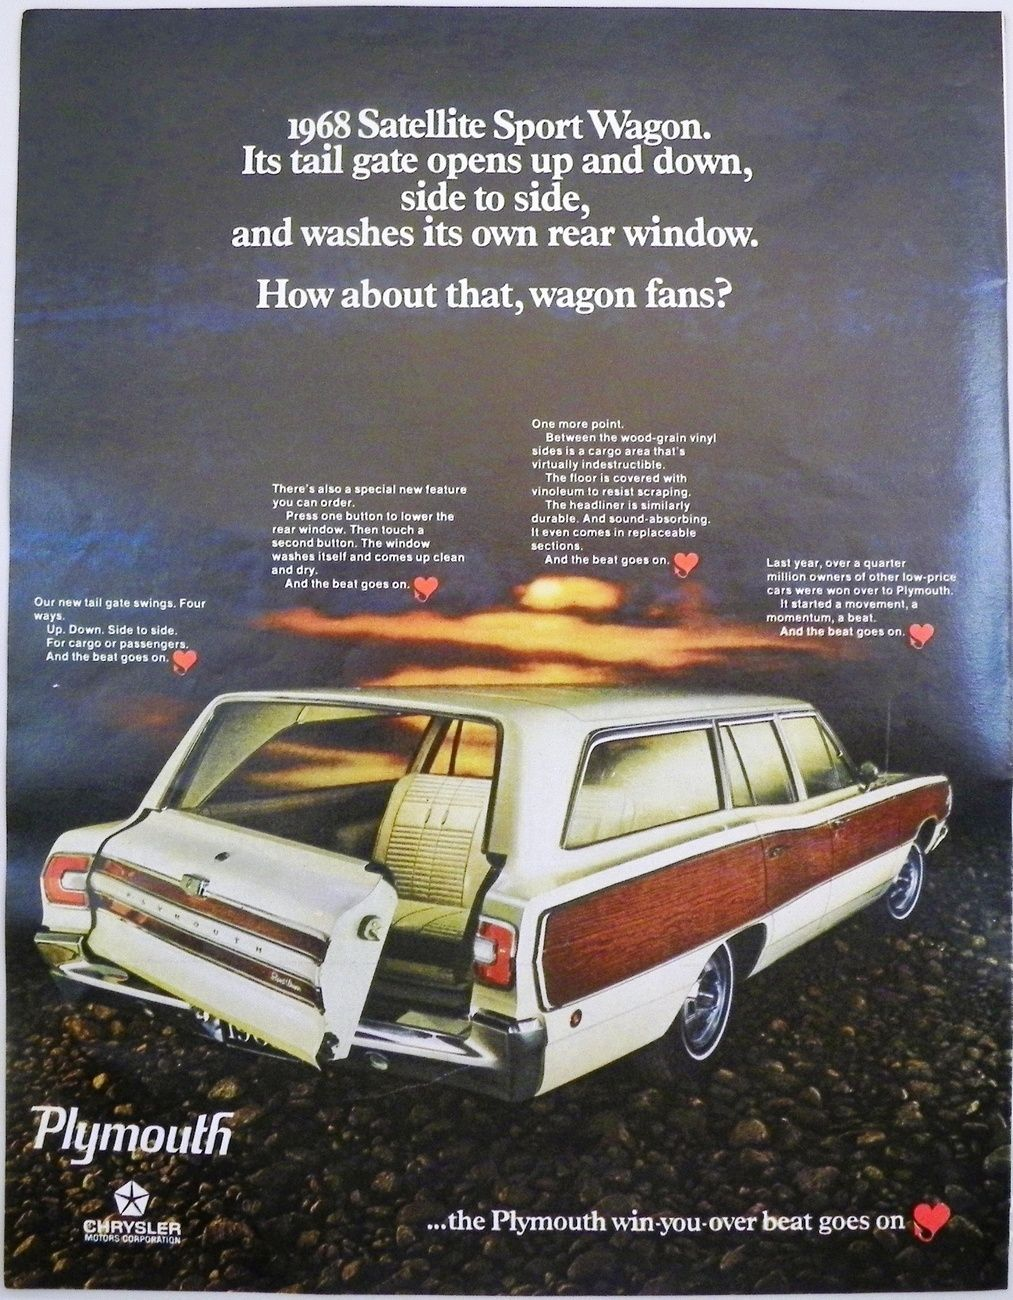 1968 Plymouth Satellite Sport Wagon Ad Look Magazine 1967